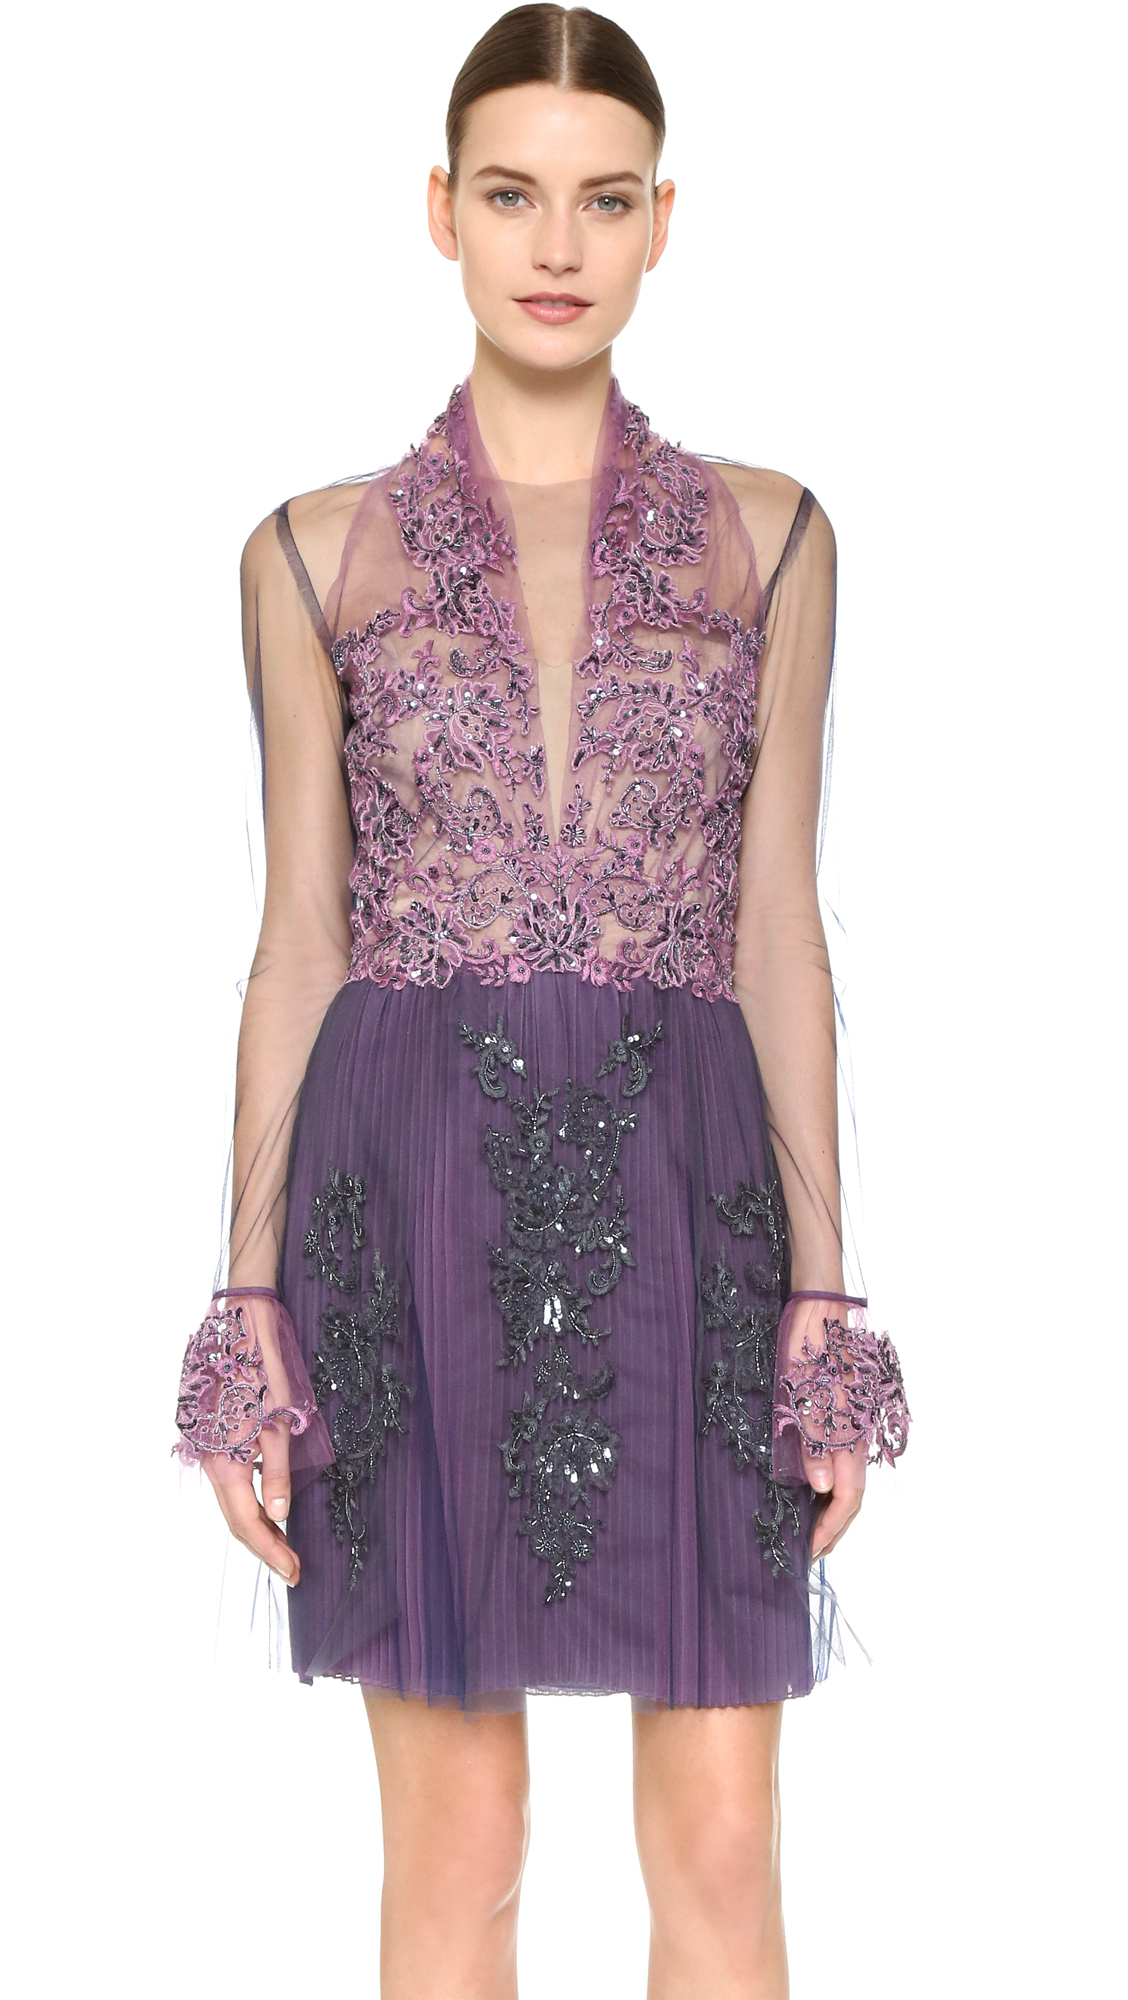 Lyst - Reem Acra Re-embroidered Lace Illusion Dress - Violet/blue in ...